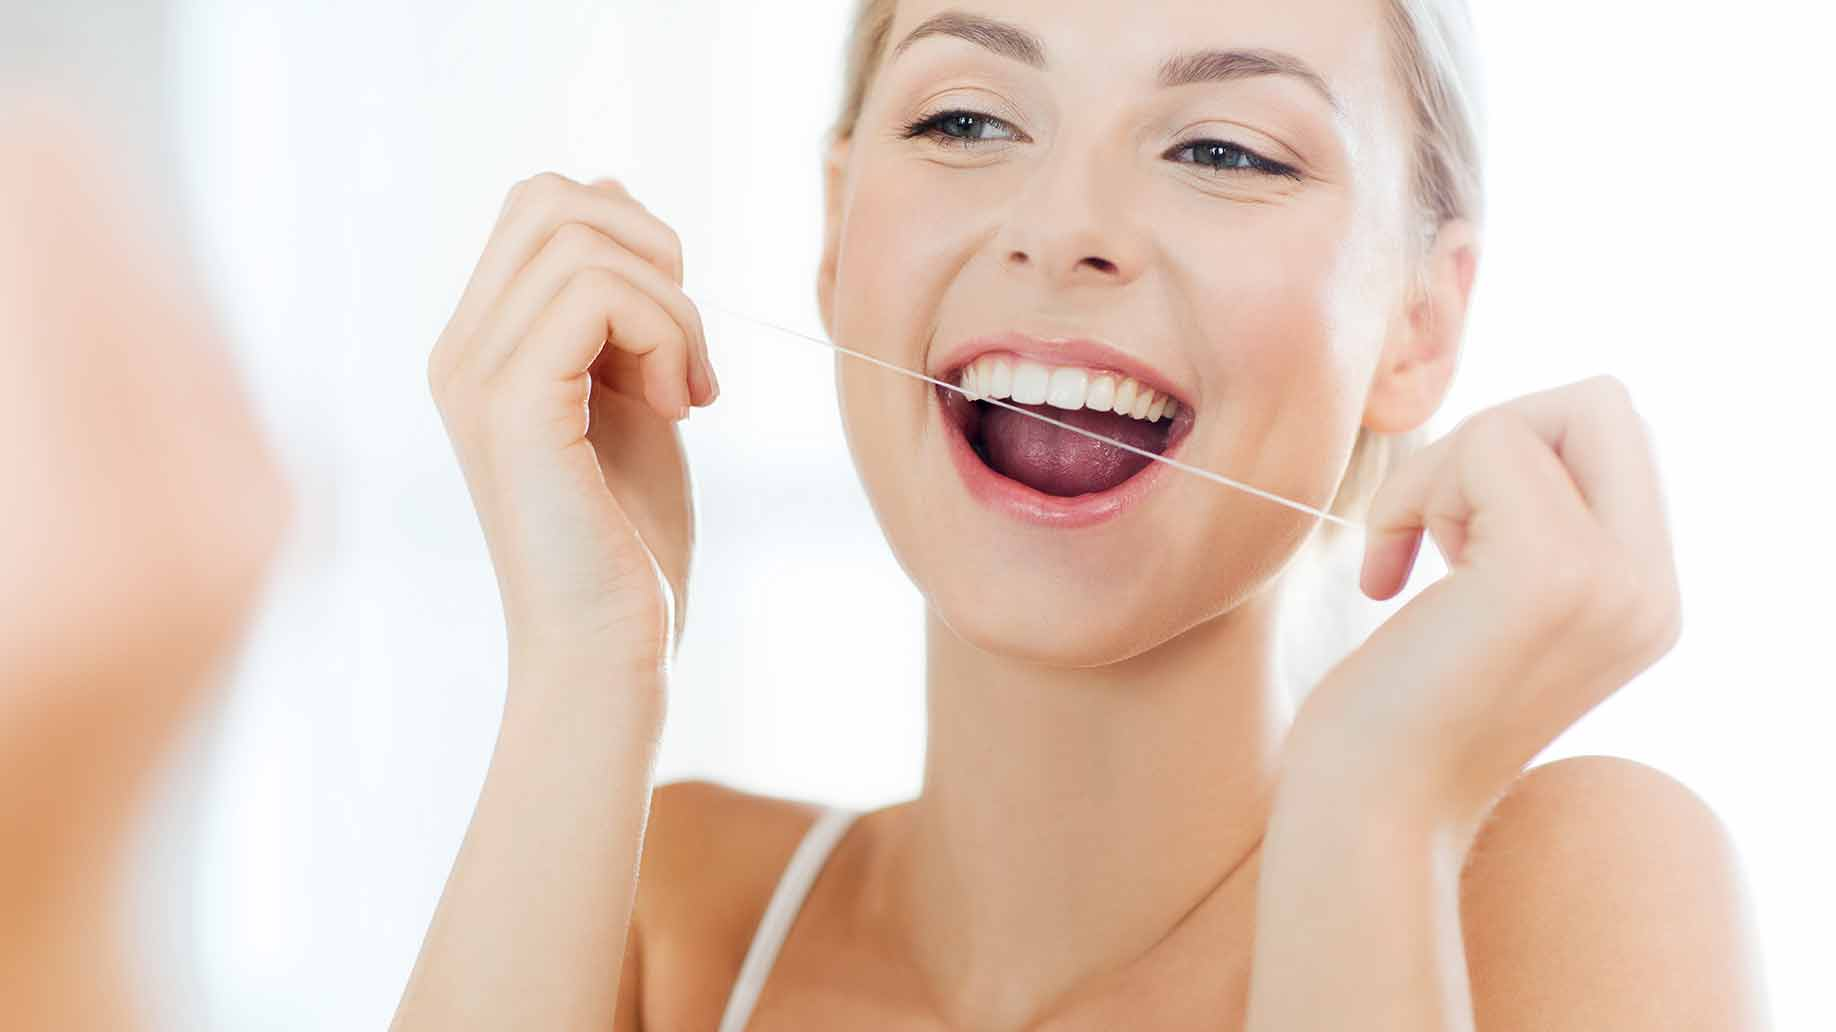 natural health benefits coconut oil oral health bacteria clean gingivitis bad breath oil pulling